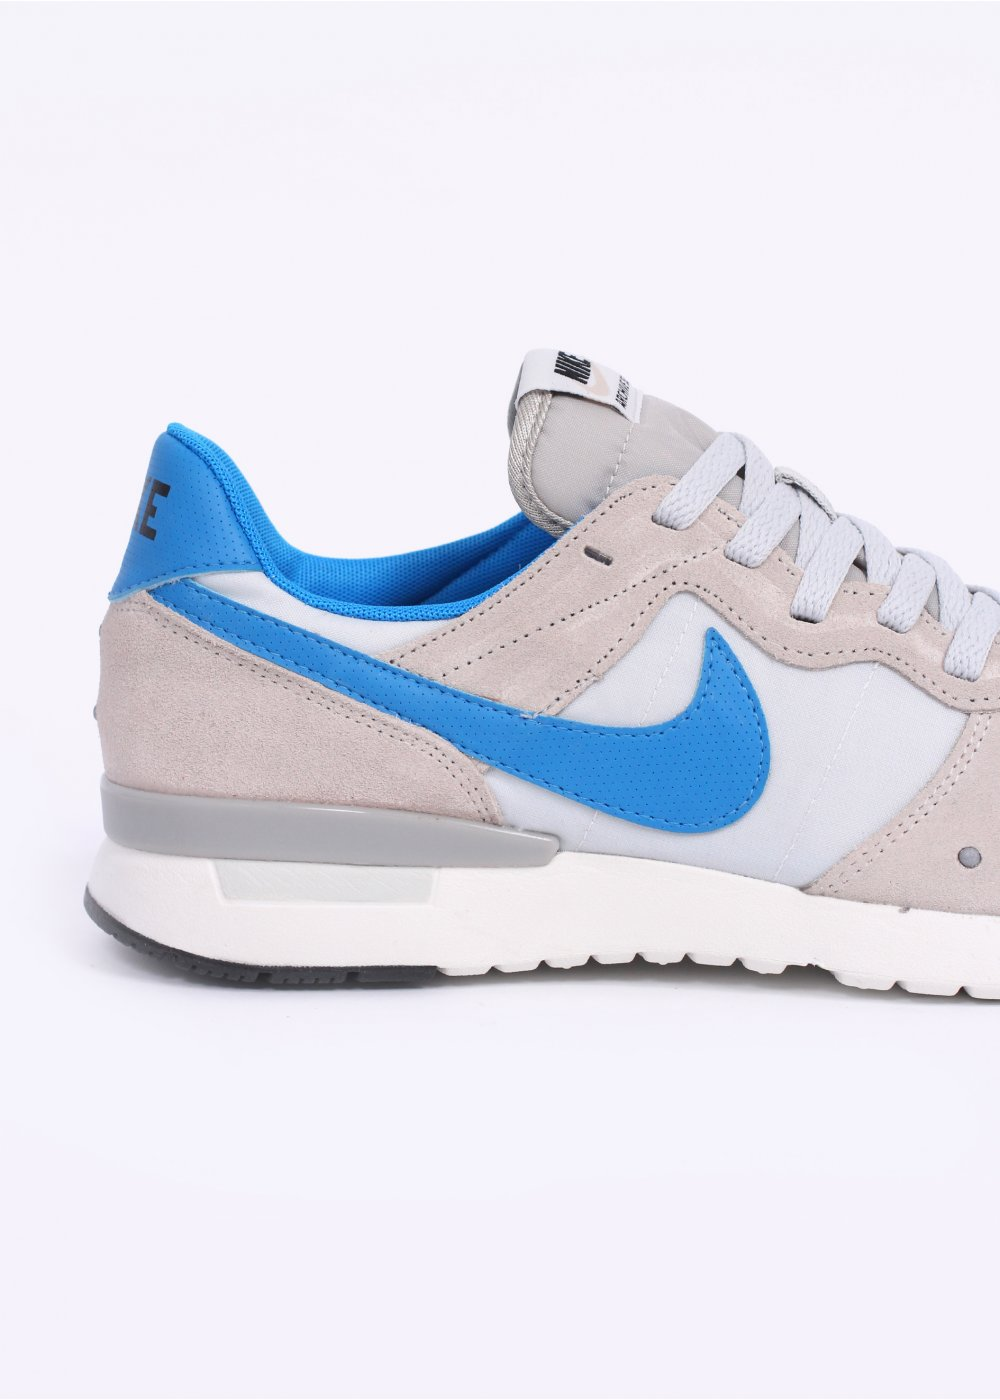 7d0eb6a5f5c6 Nike Archive  83.M Trainers - Light Bone   Photo Blue   Pure Platinum